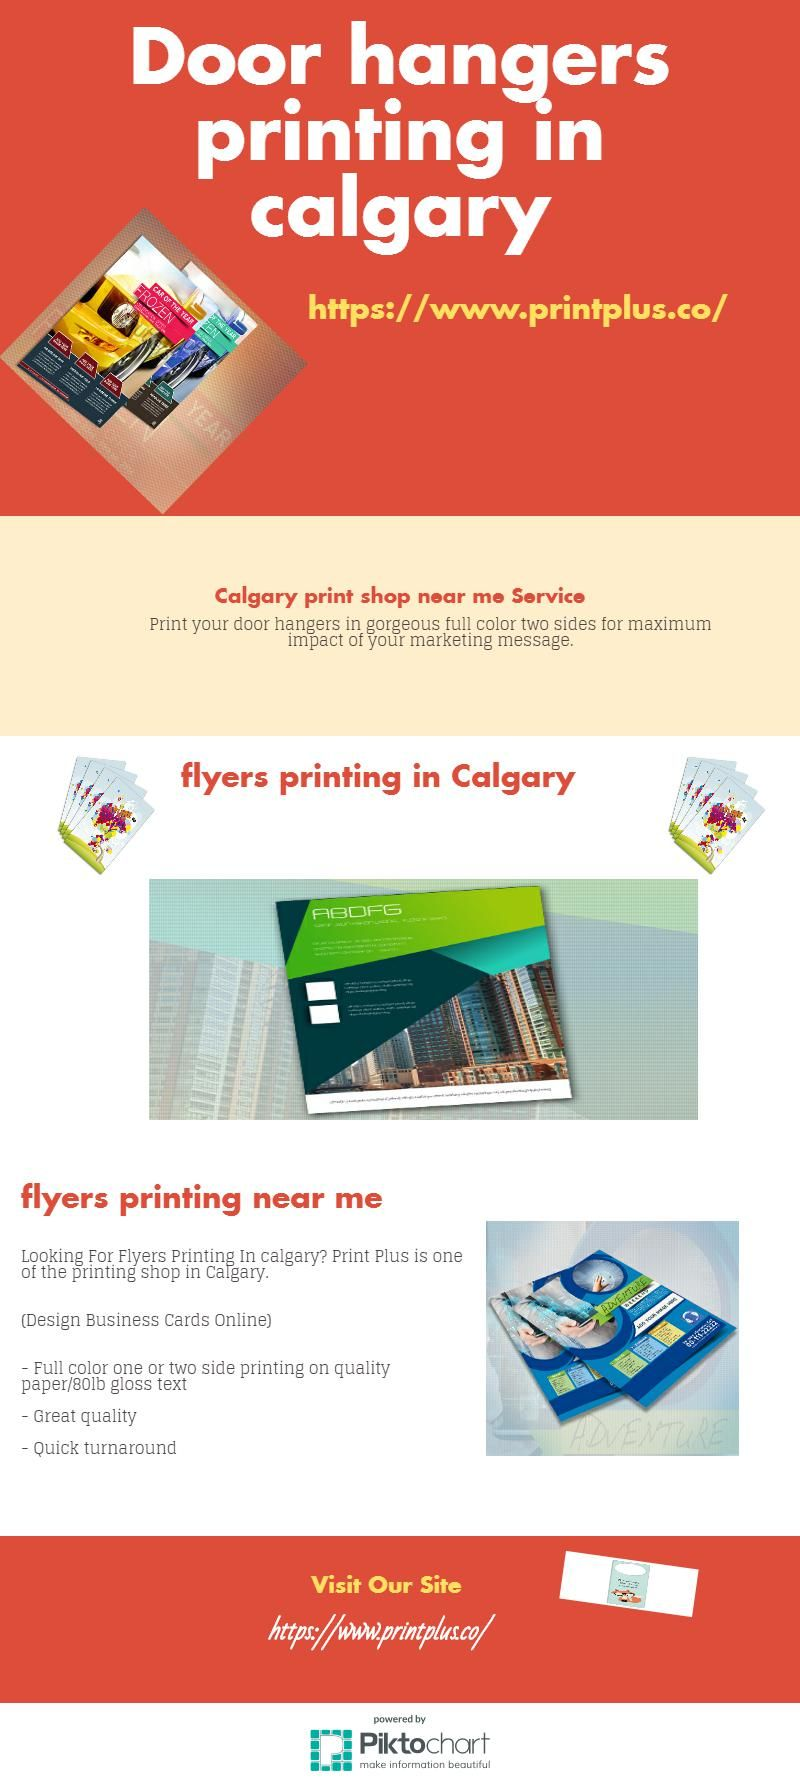 Looking For Flyers Printing In calgary? Print Plus is one of the ...